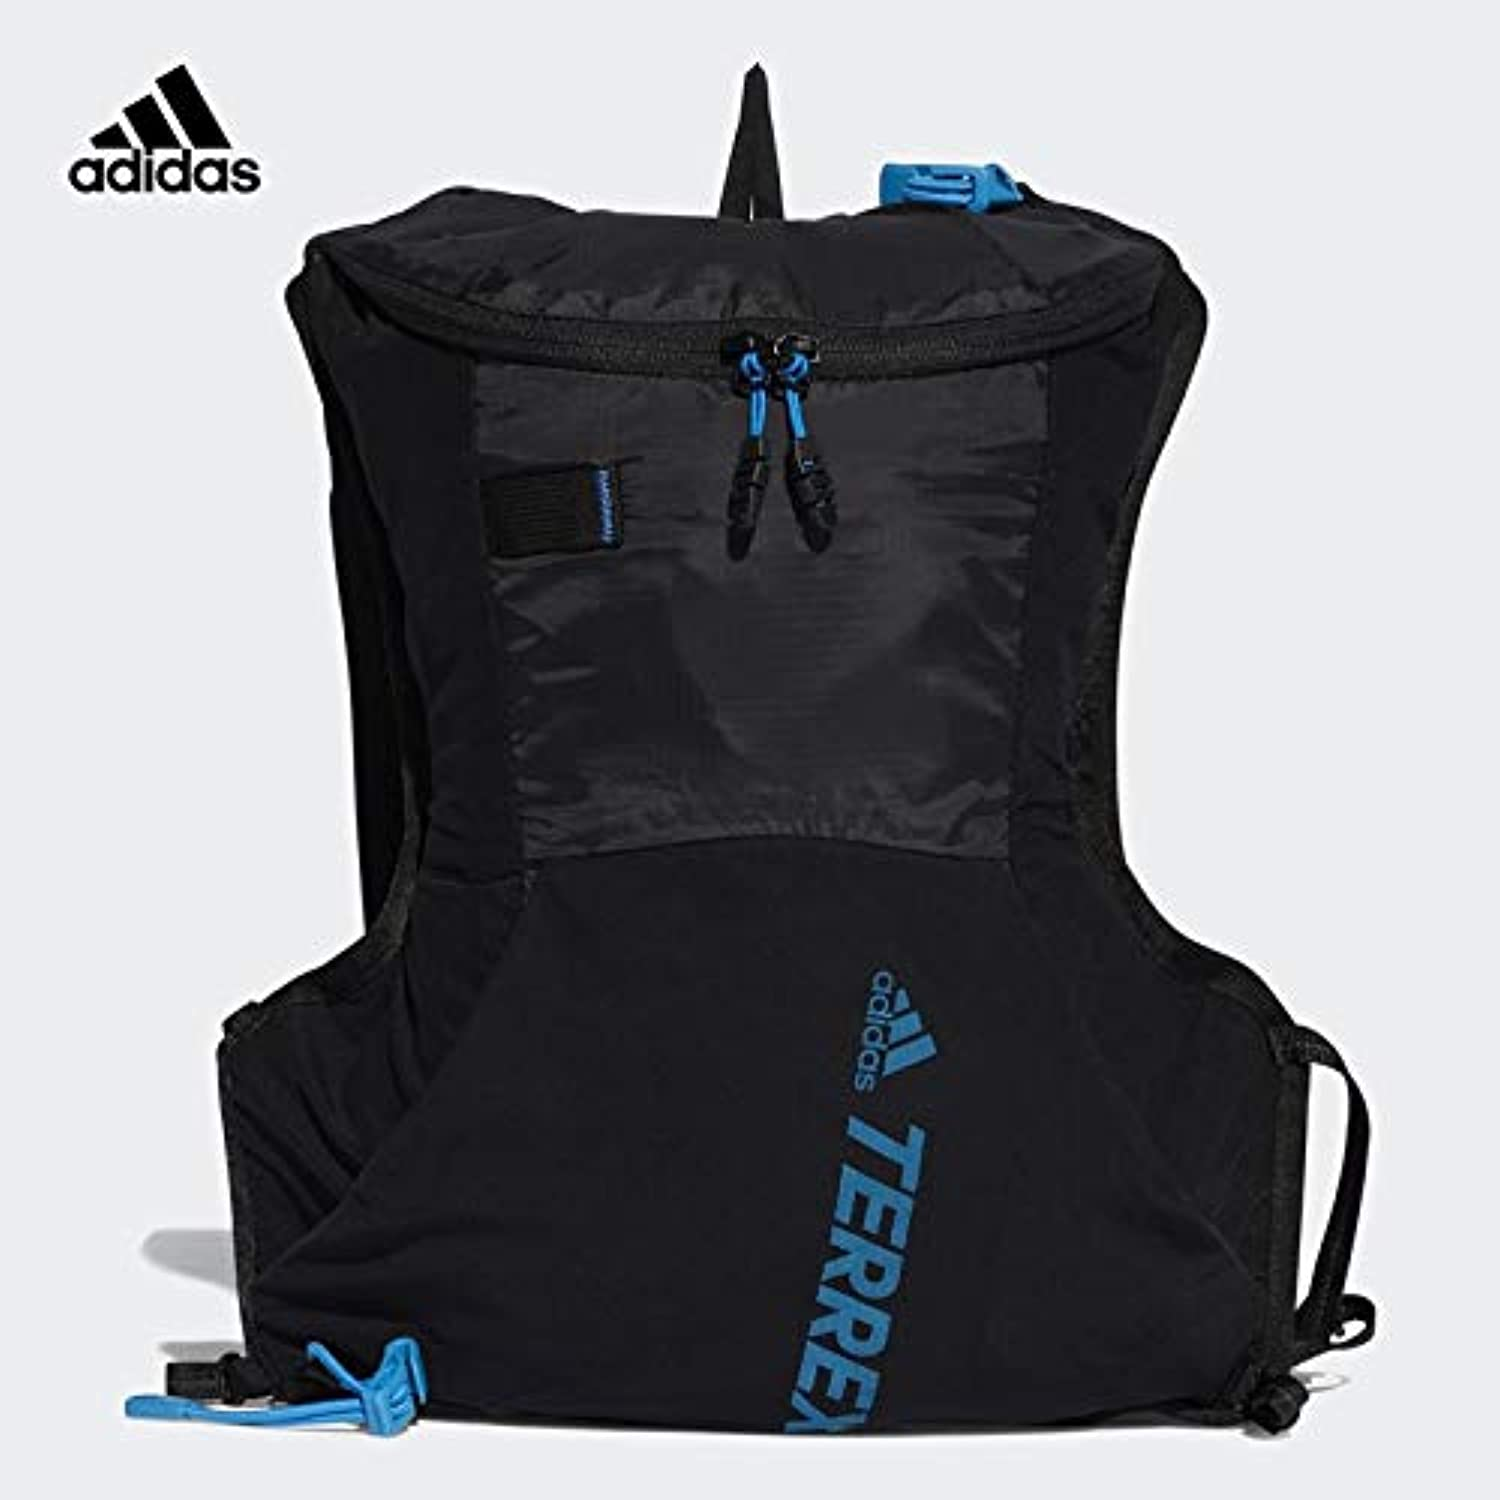 Adidas Official Adidas Outdoor Men and Women Outdoor Backpack CY6085